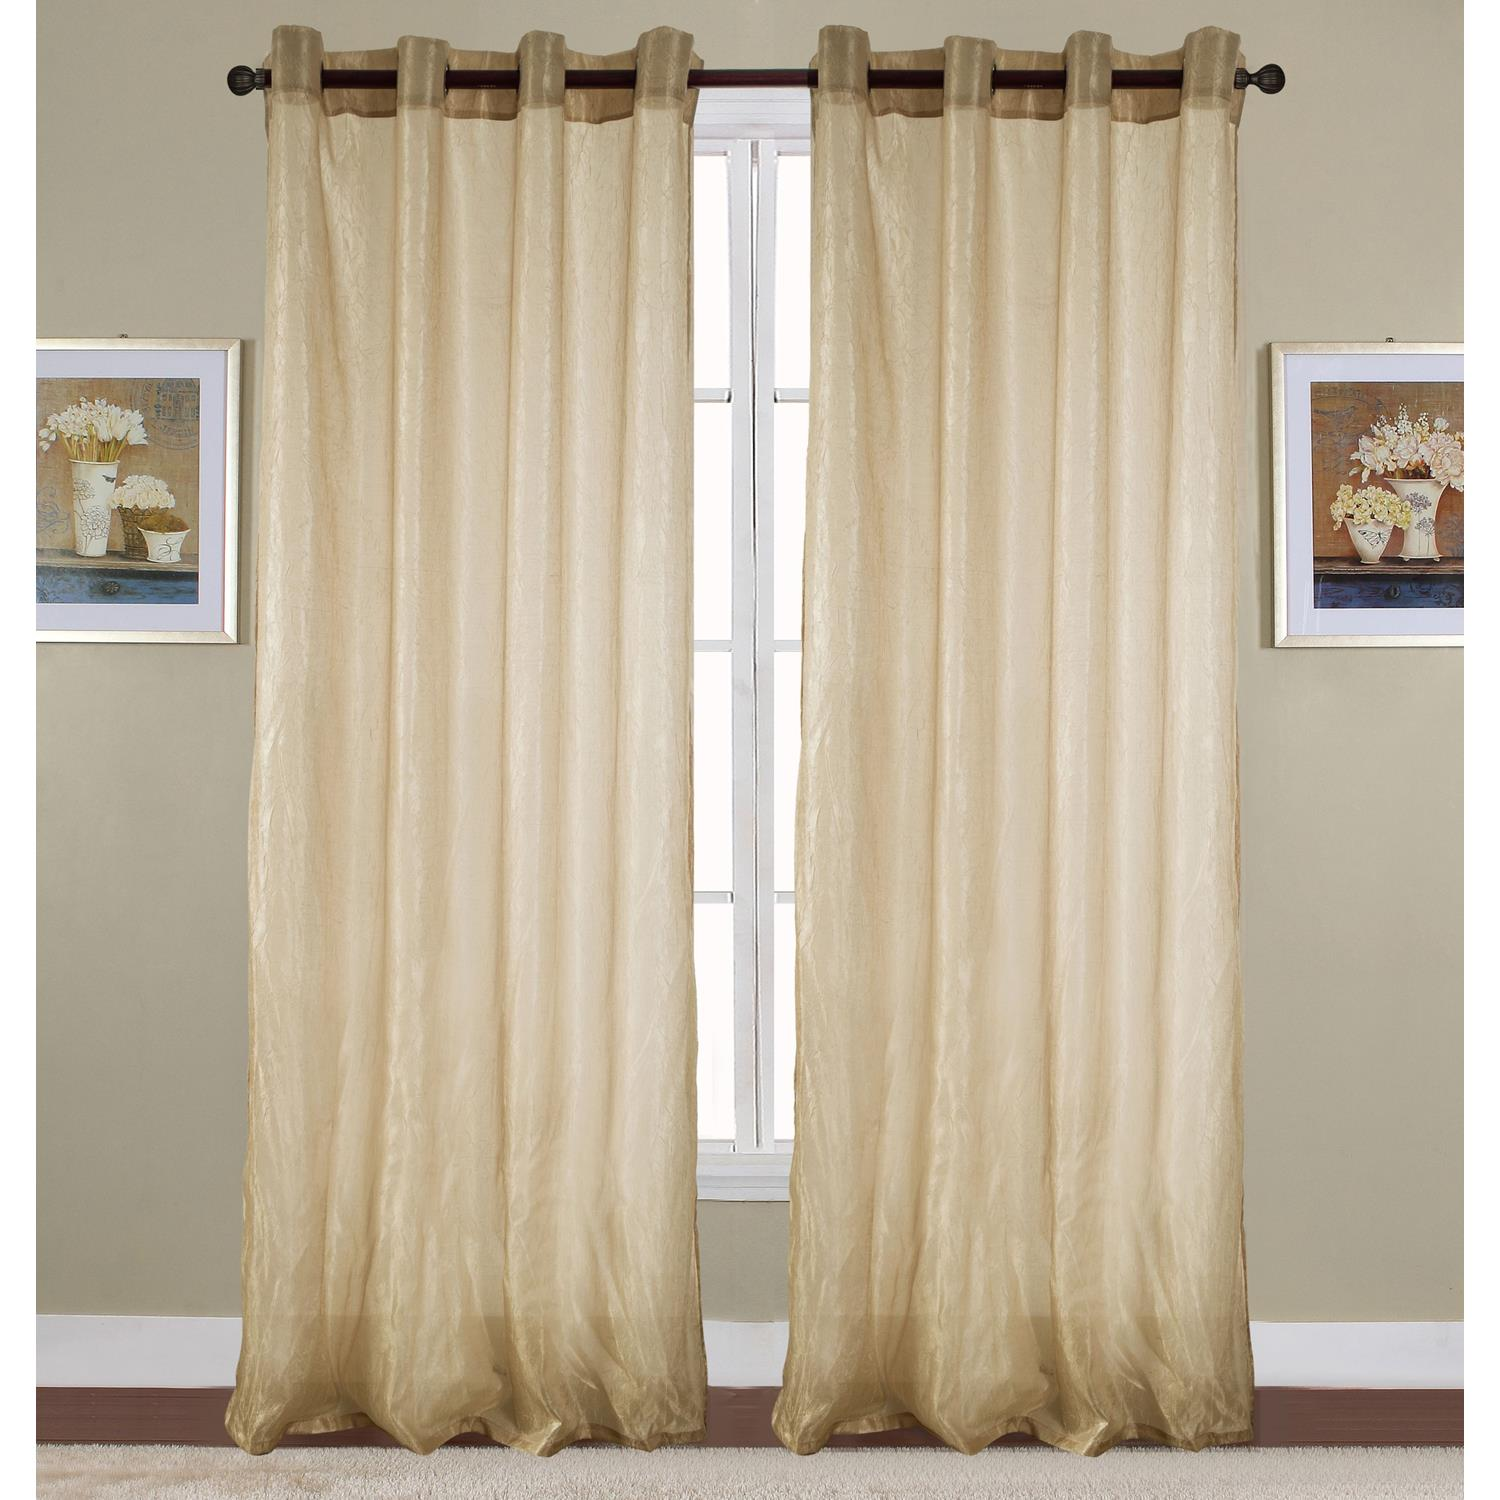 Maya Crushed 52 x 90 in. Grommet Single Curtain Panel, Taupe by Ramallah Trading Company, Inc.